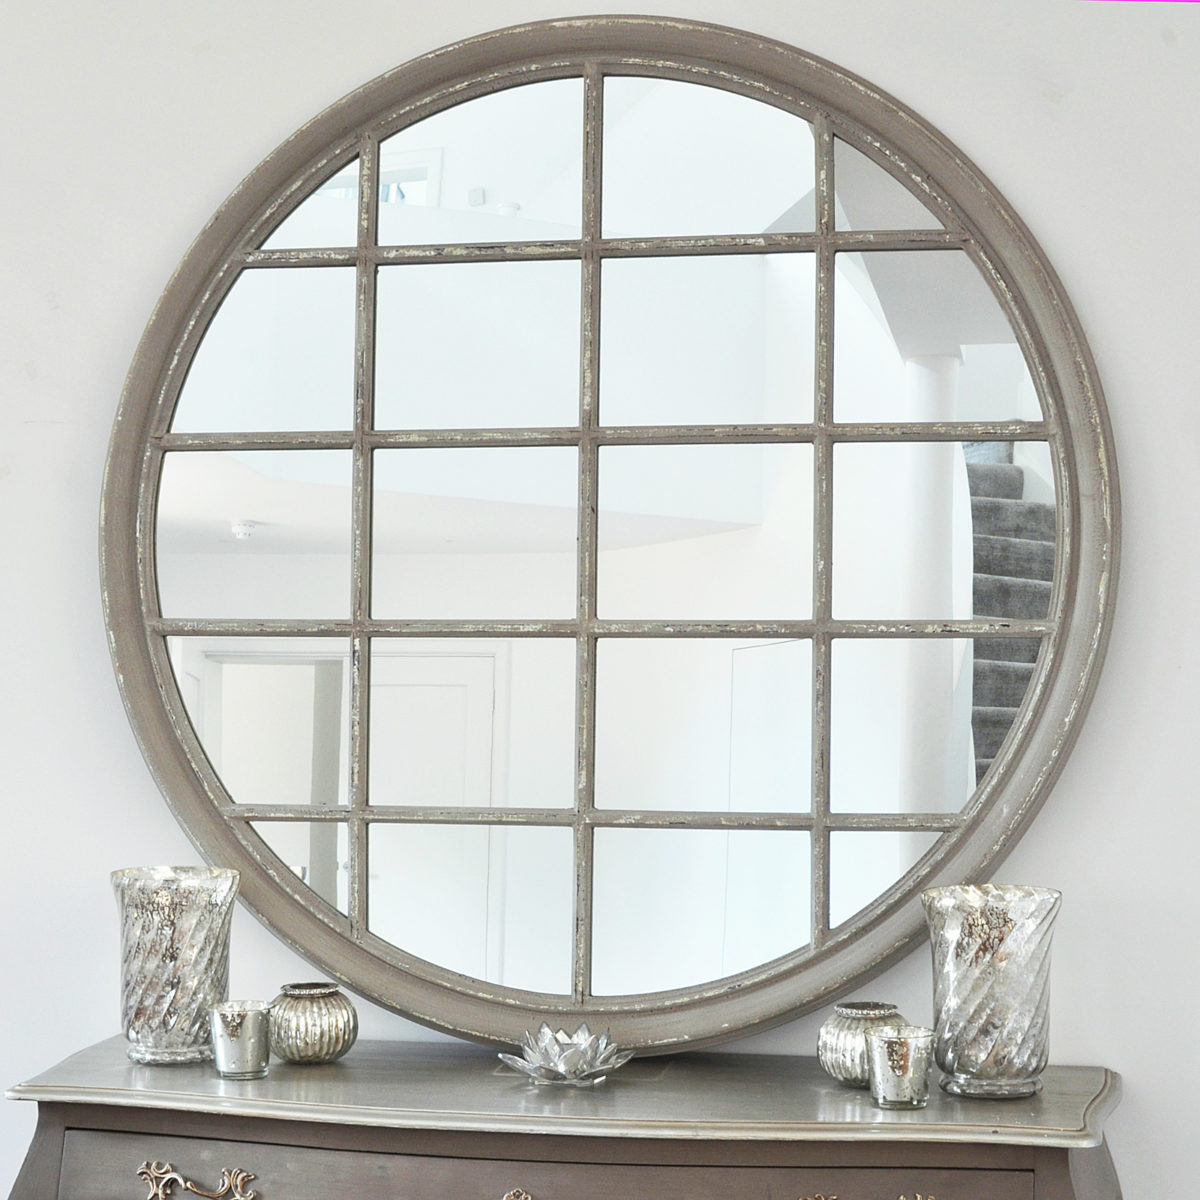 Large Round Grey Window Wall Mirror Intended For Newest Round Wood Wall Mirrors (View 8 of 20)